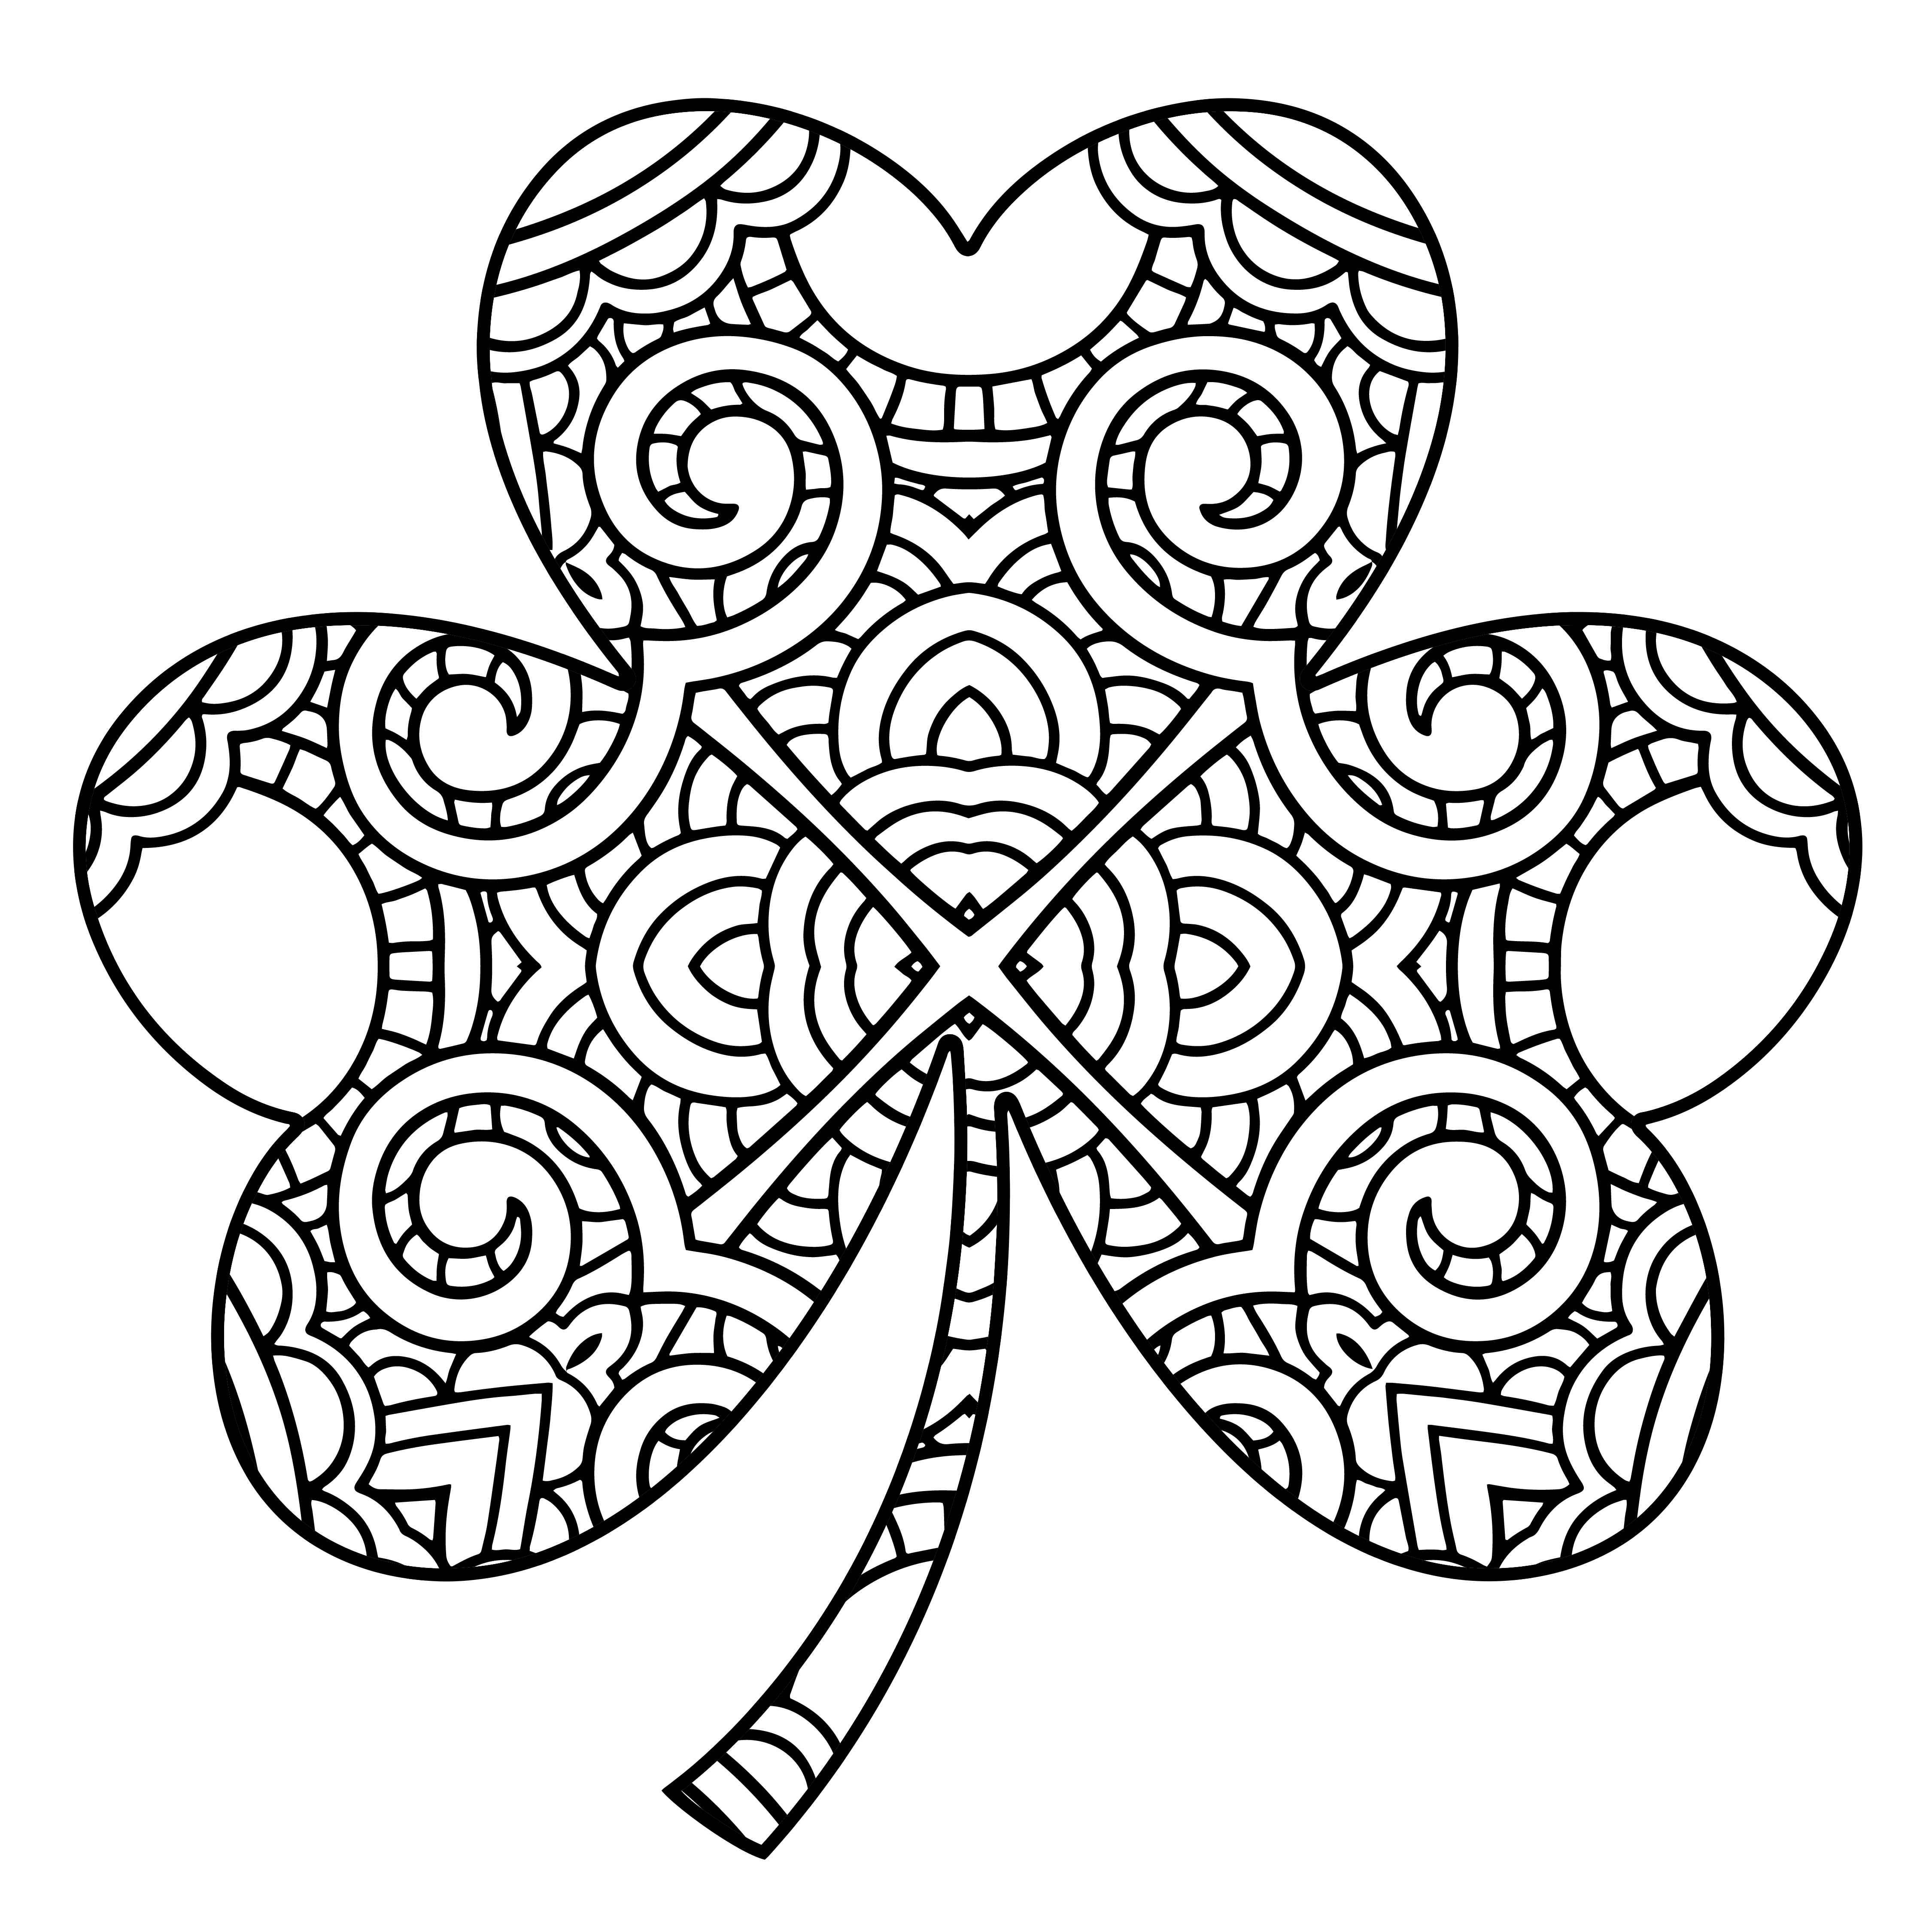 Coloring Page Celtic F C: Pin By Irma Meyer On Coloring Pages